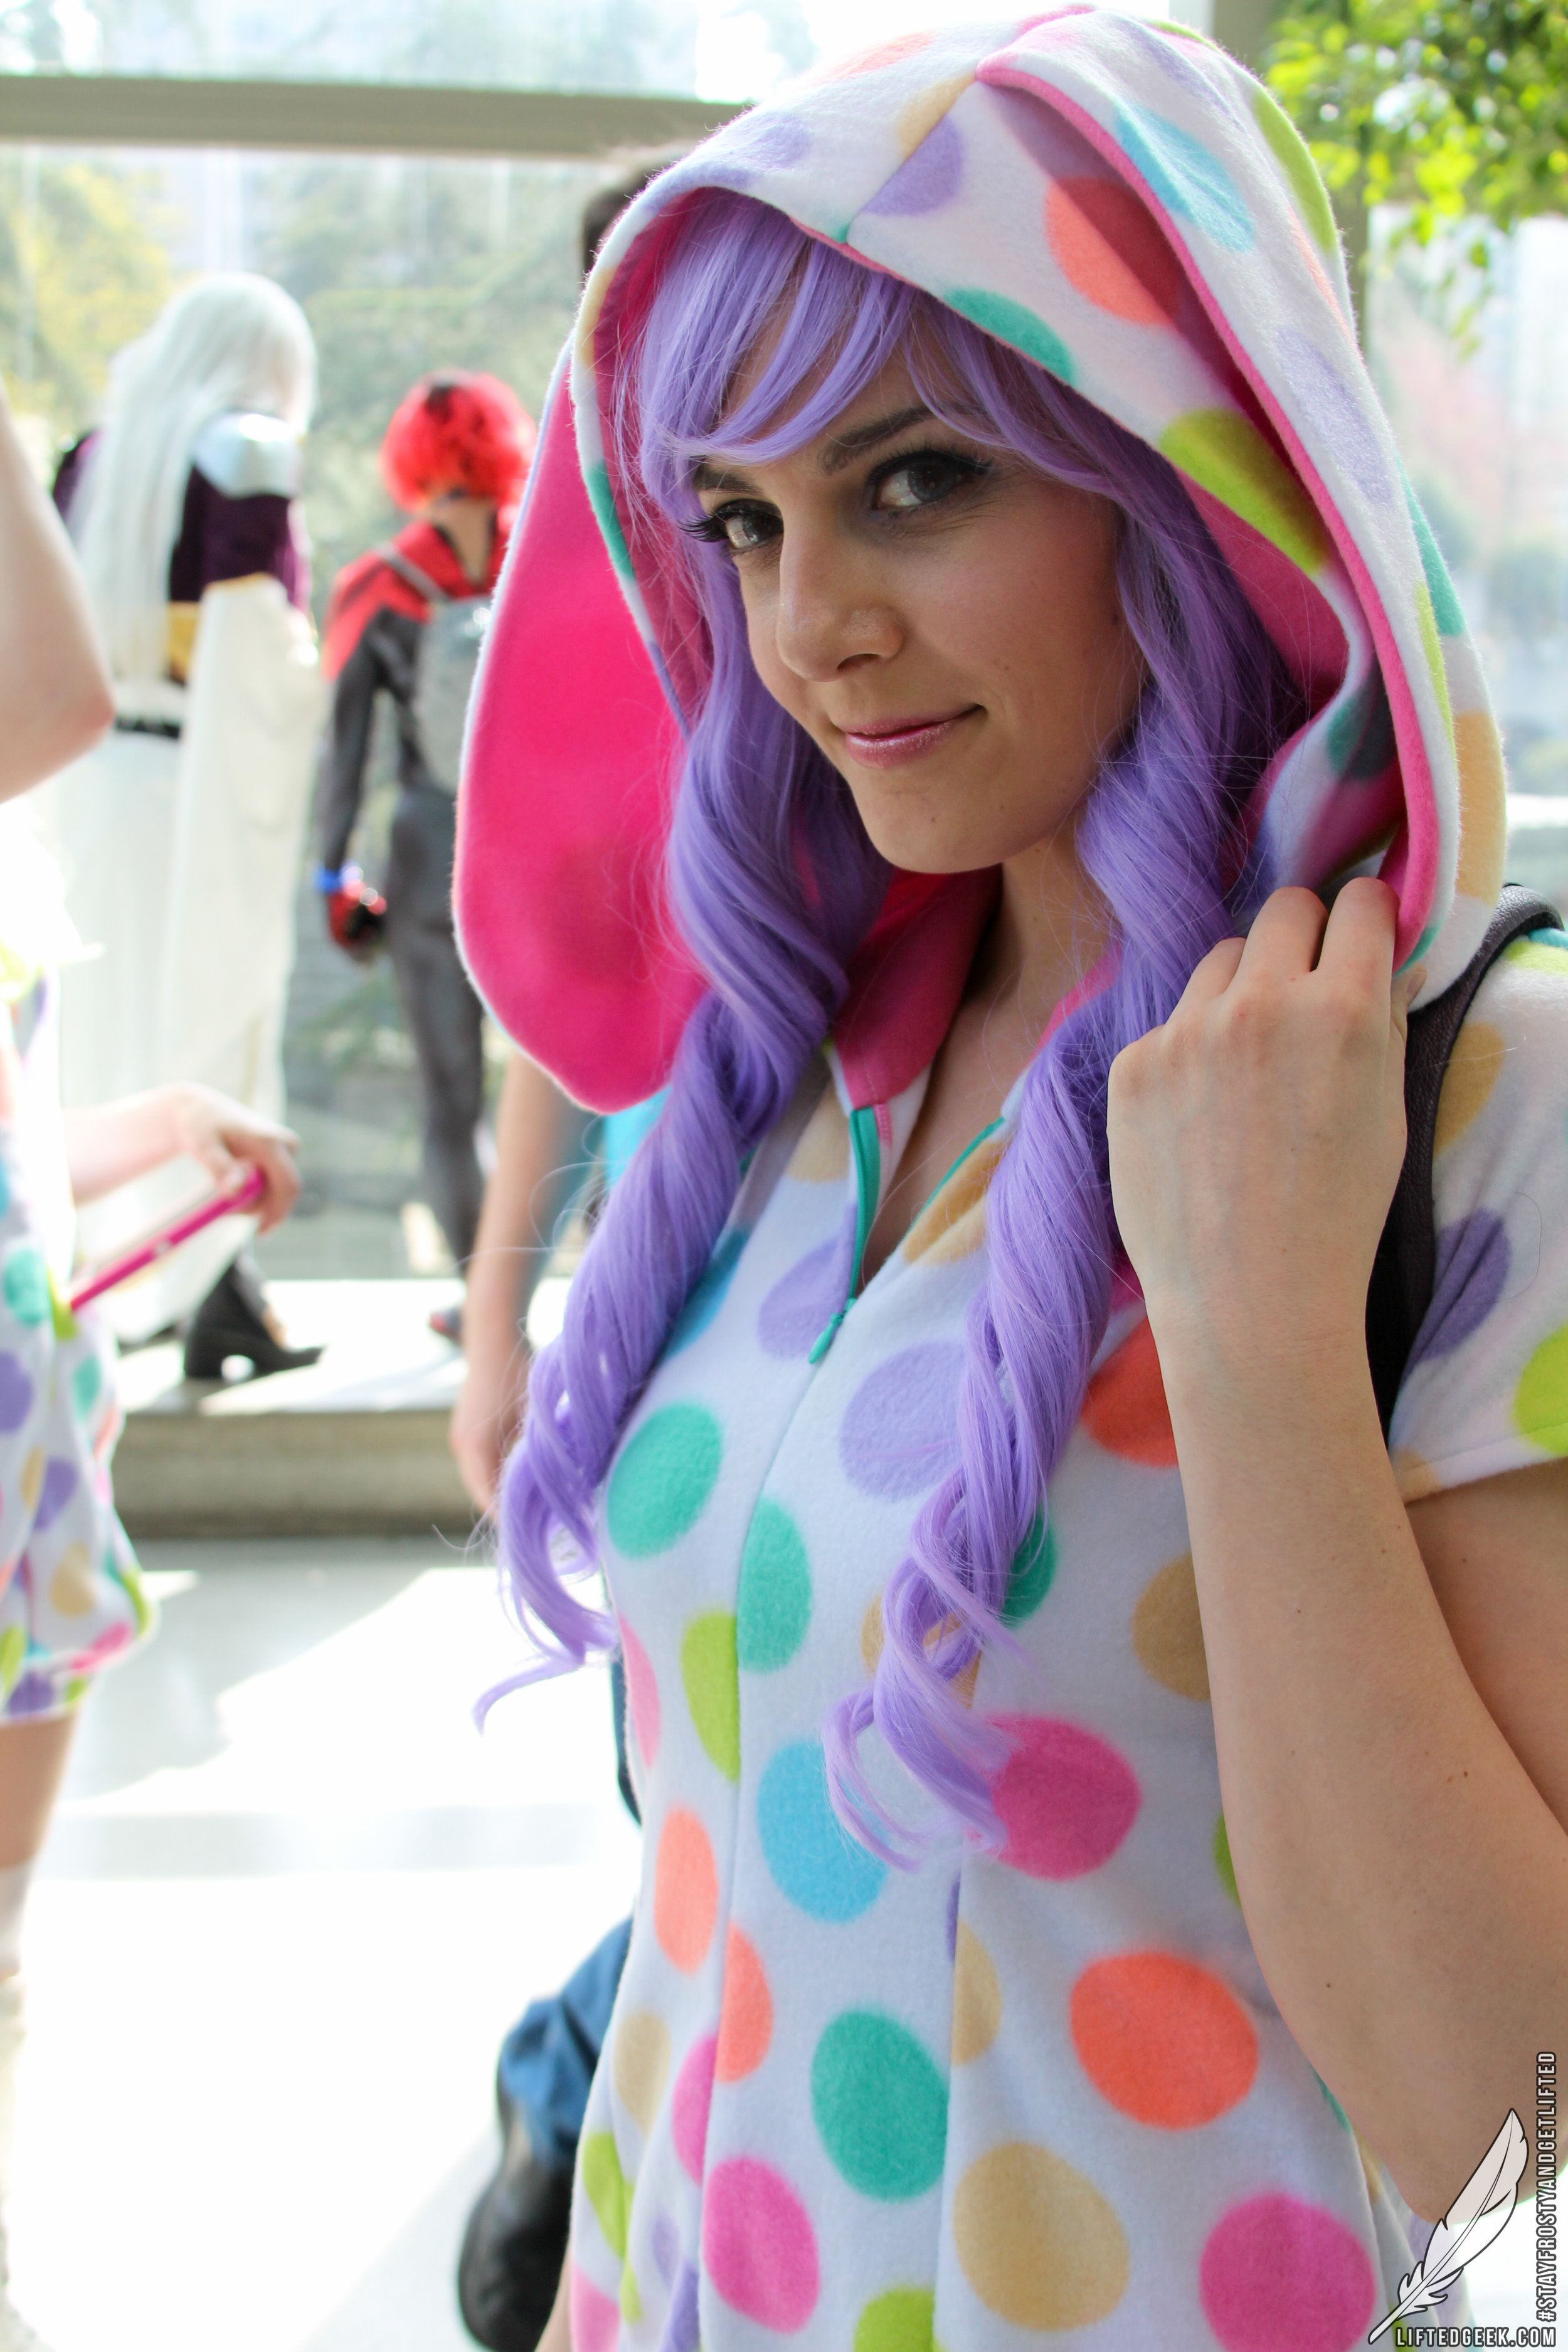 Sakuracon-cosplay-110.jpg